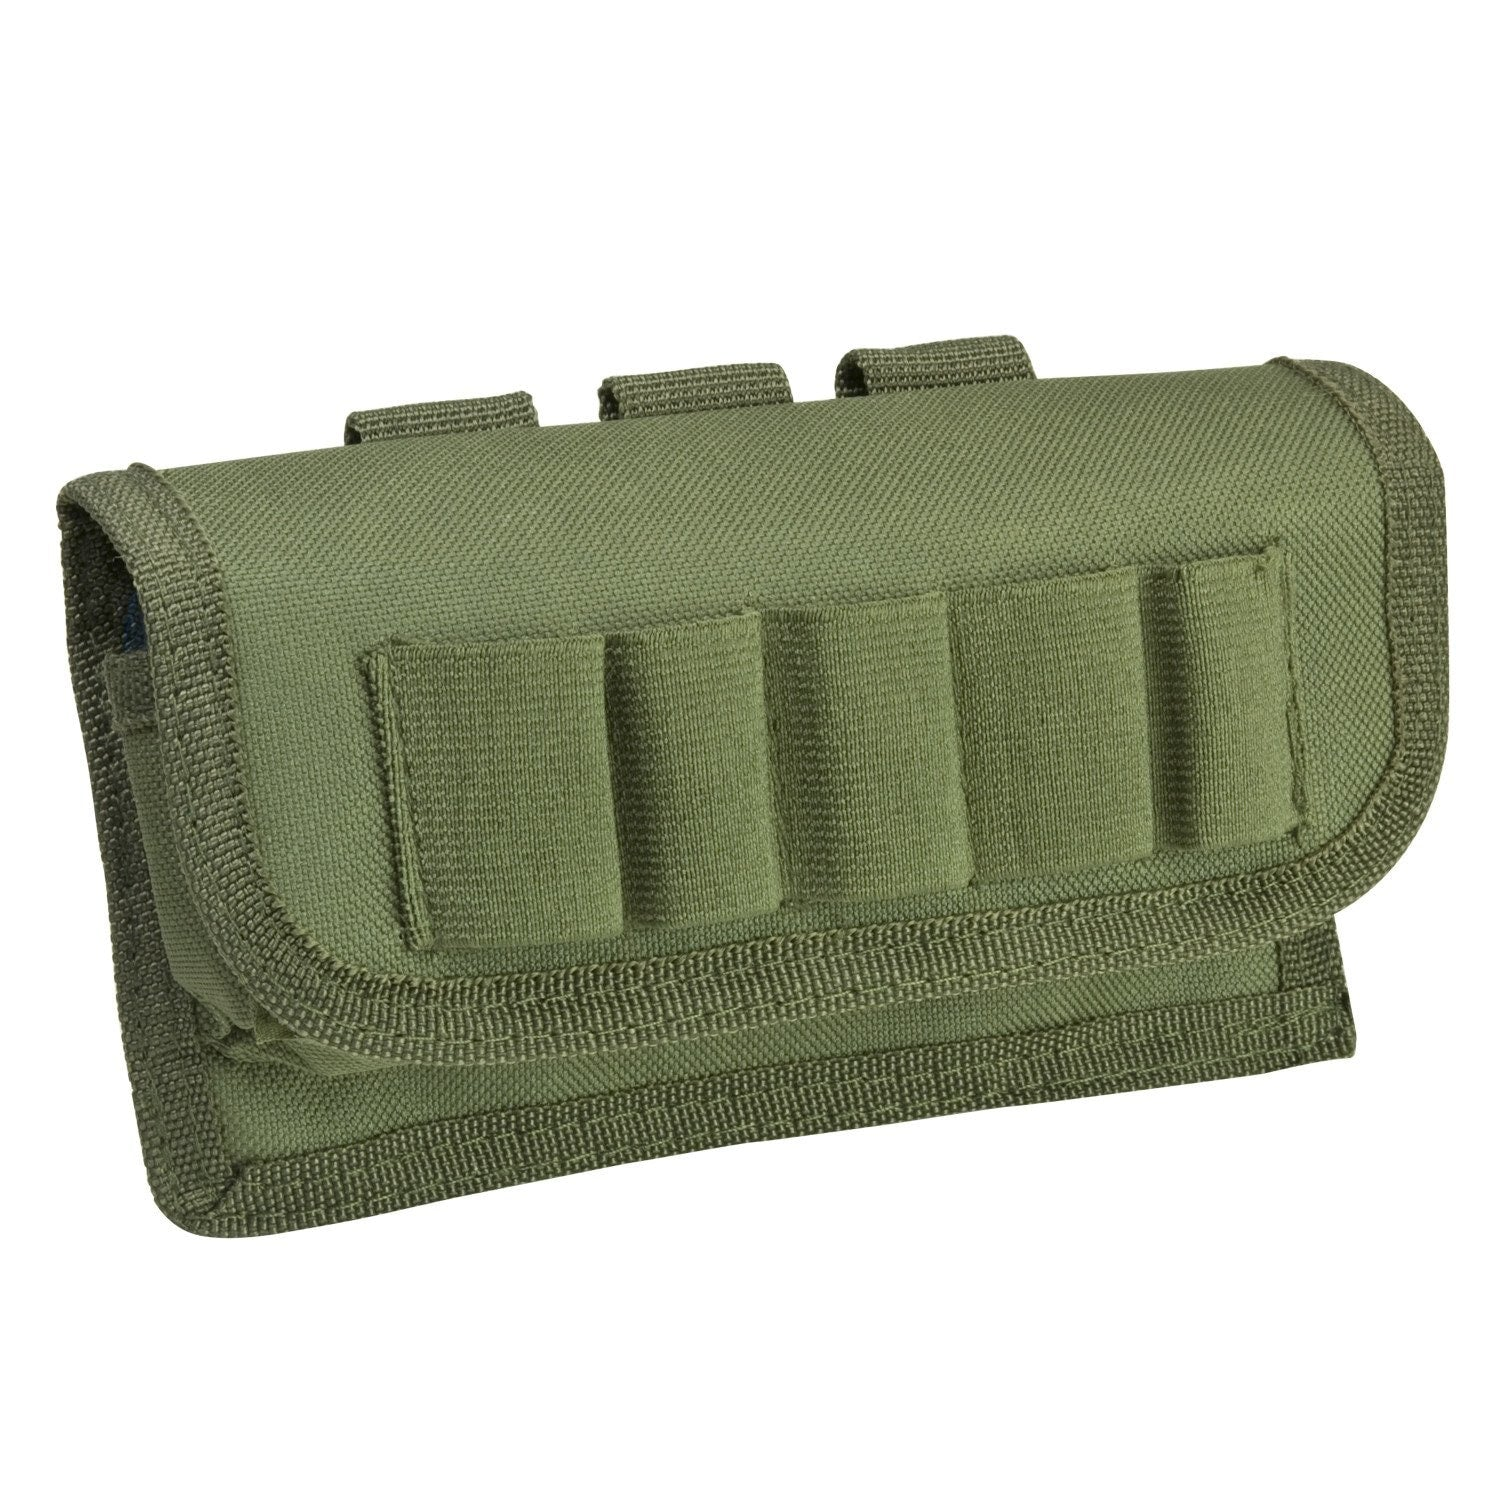 Tactical Shotshell Carrier - Green - Molle Pouches And Accessories - Vism - Colonel Mustard